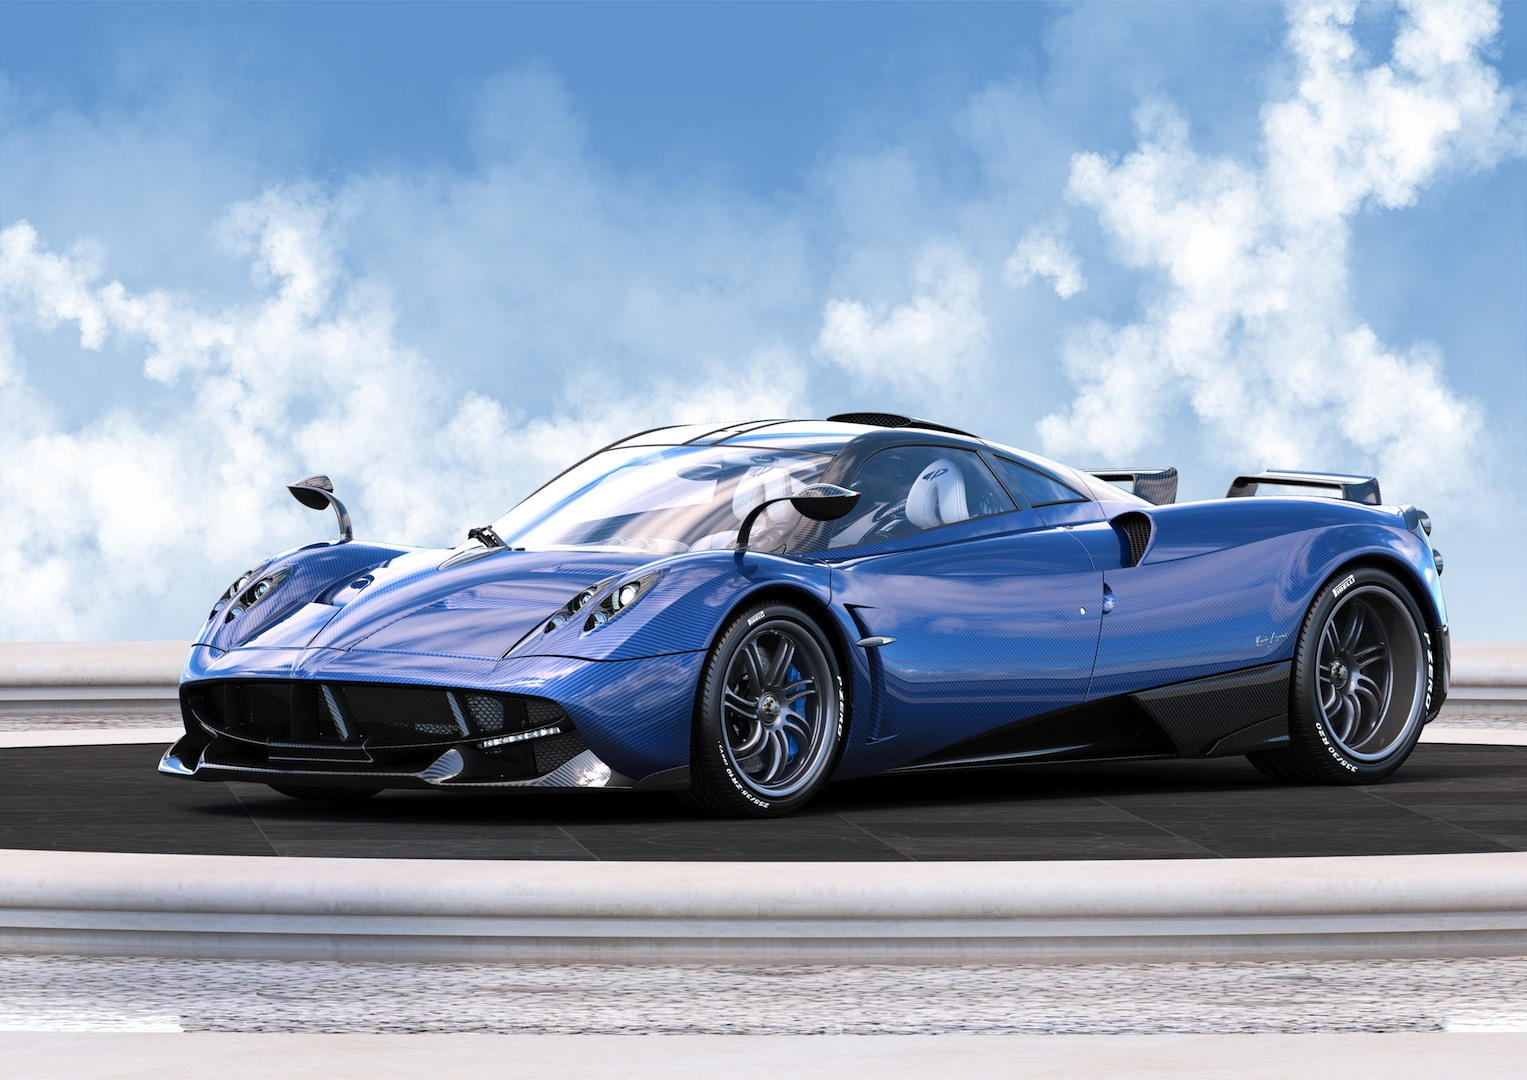 Official: 1 of 1 Pagani Huayra Pearl - GTspirit